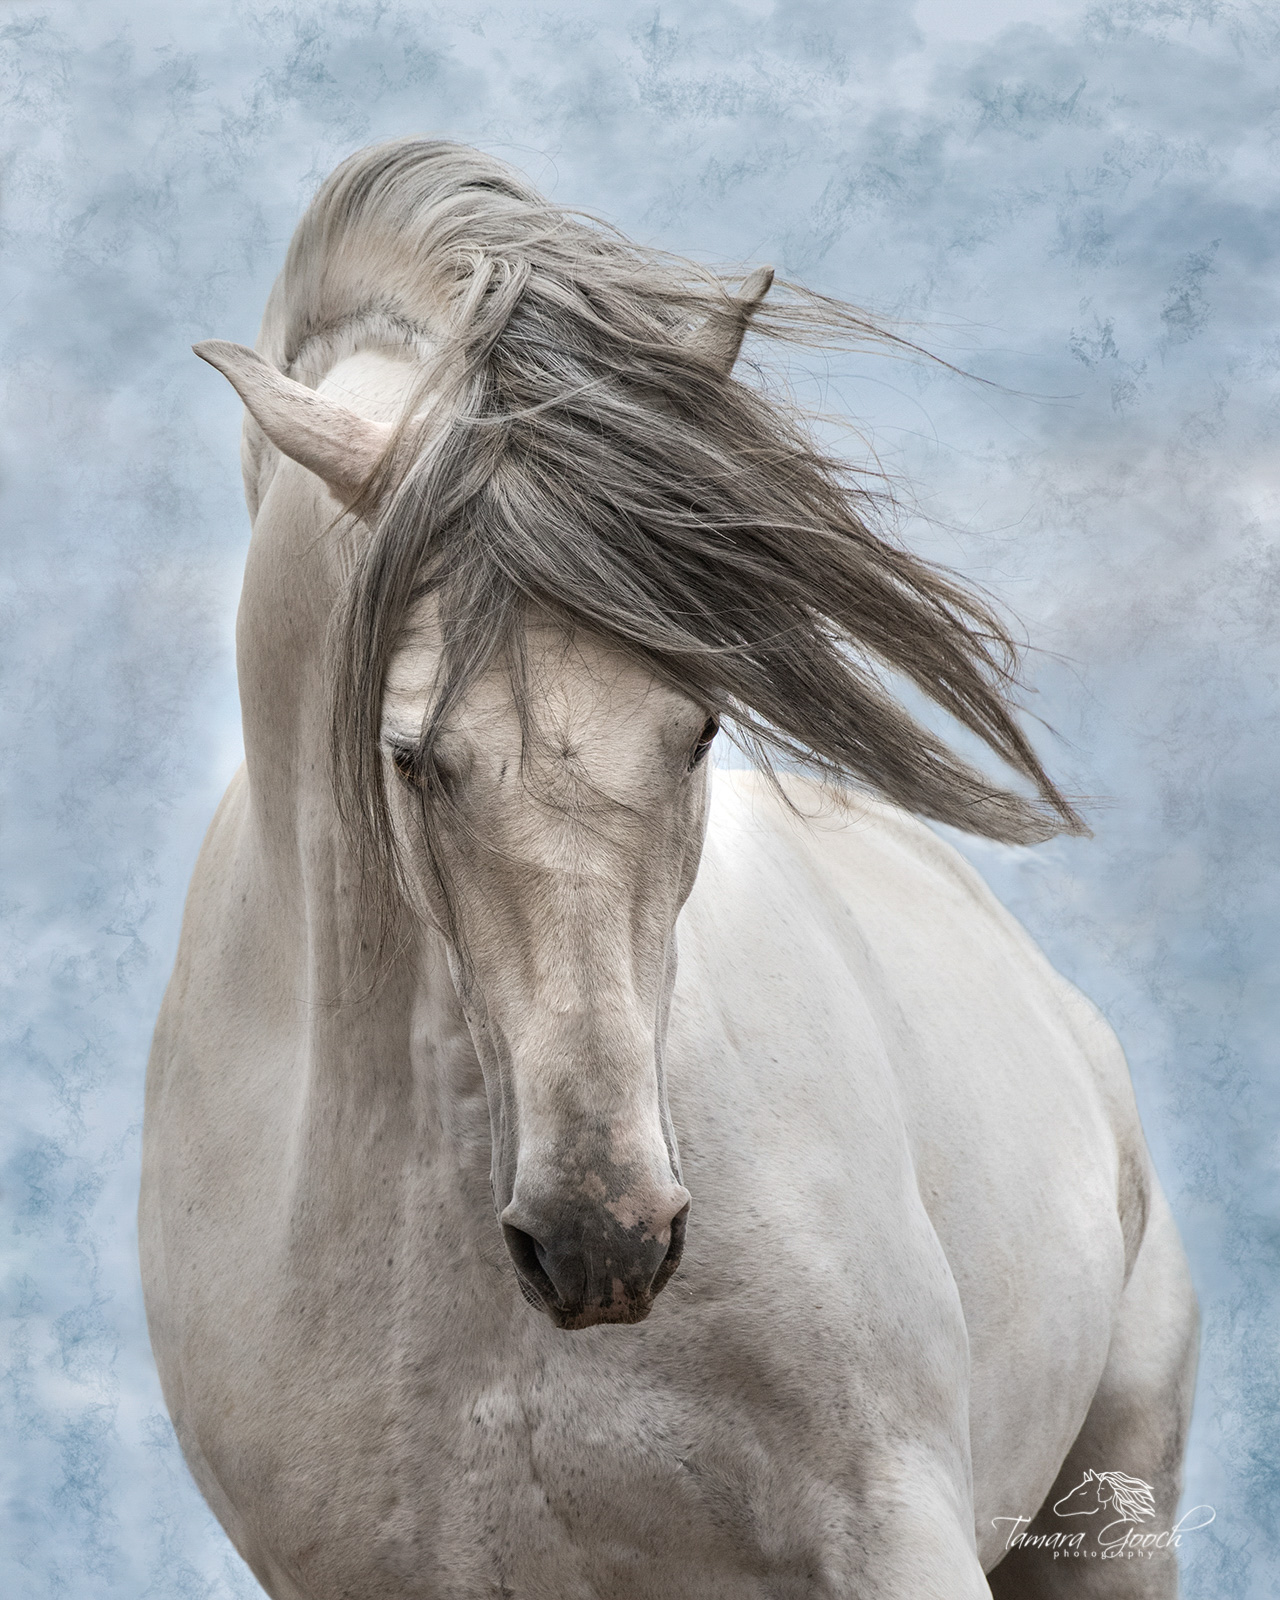 Andalusian stallion photos, PRE, andalusian, assignment, at liberty, editorial, equestrian, equestrian lifestyle, equestrian lifestyle images, equine, equine photographer, equine photography, fine art, photo